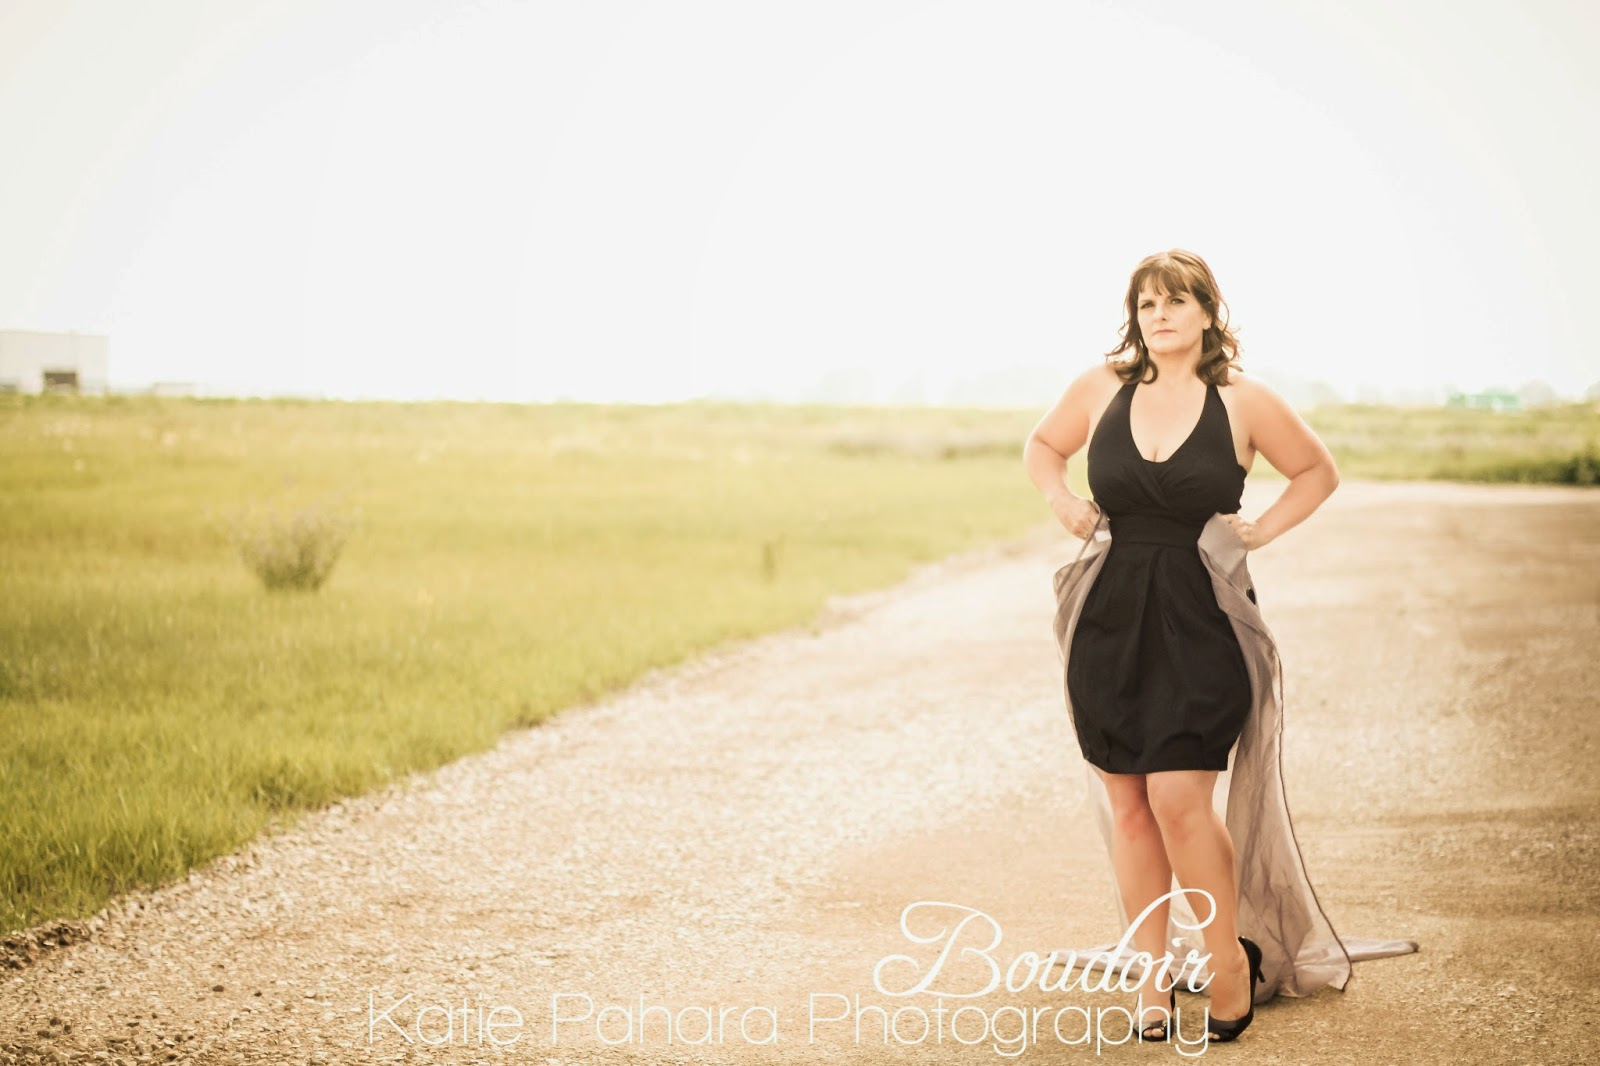 Outdoor Boudoir Photography Lethbridge